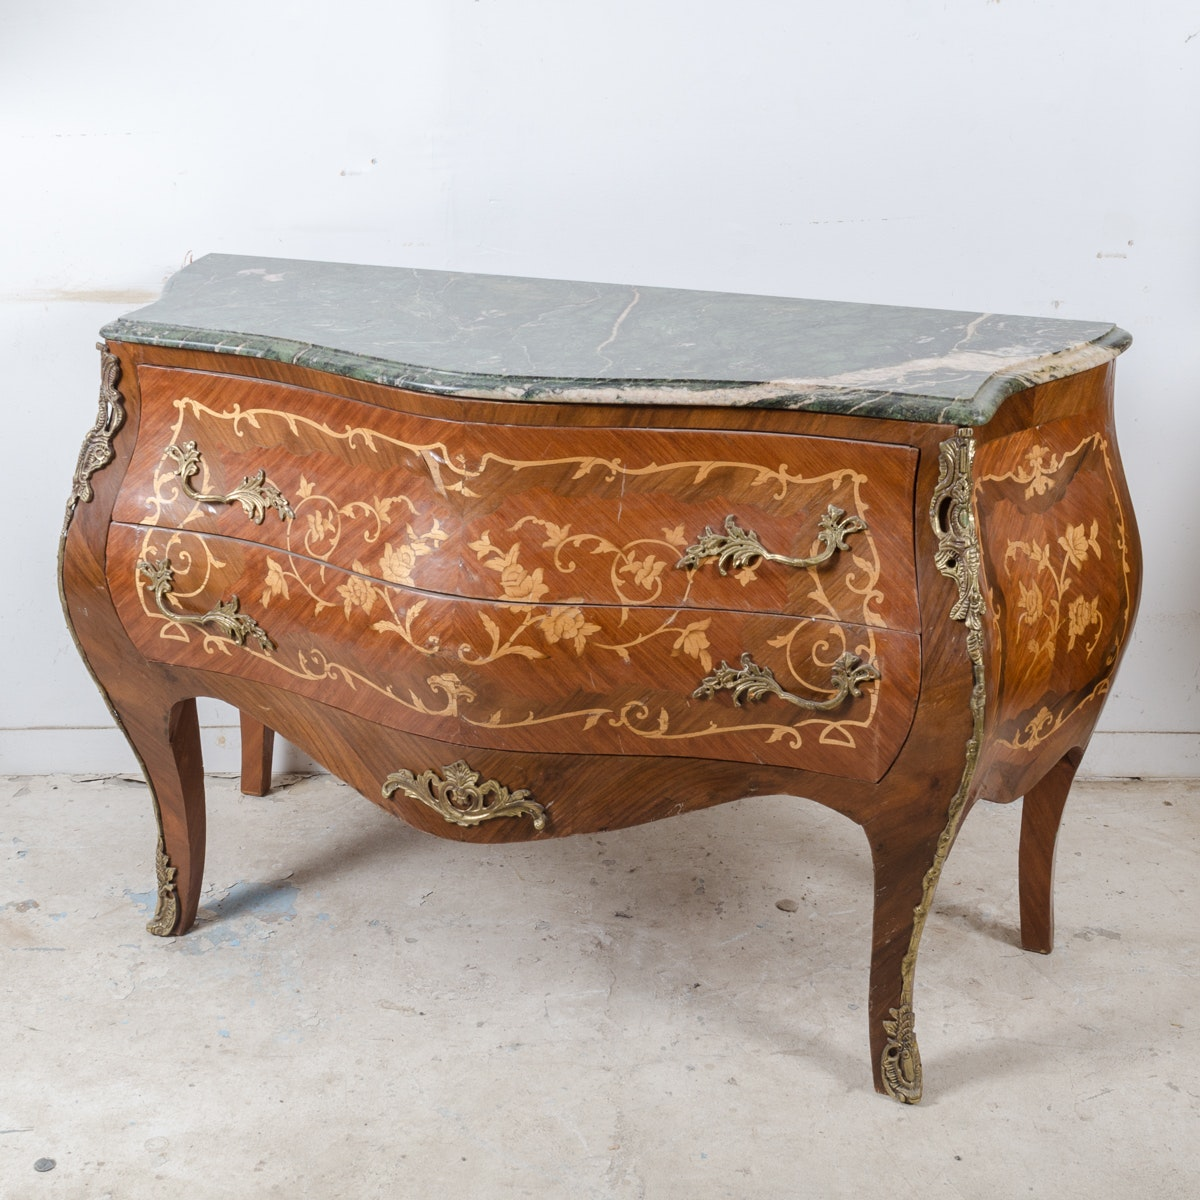 Louis XV Style Marquetry Bombé Chest of Drawers